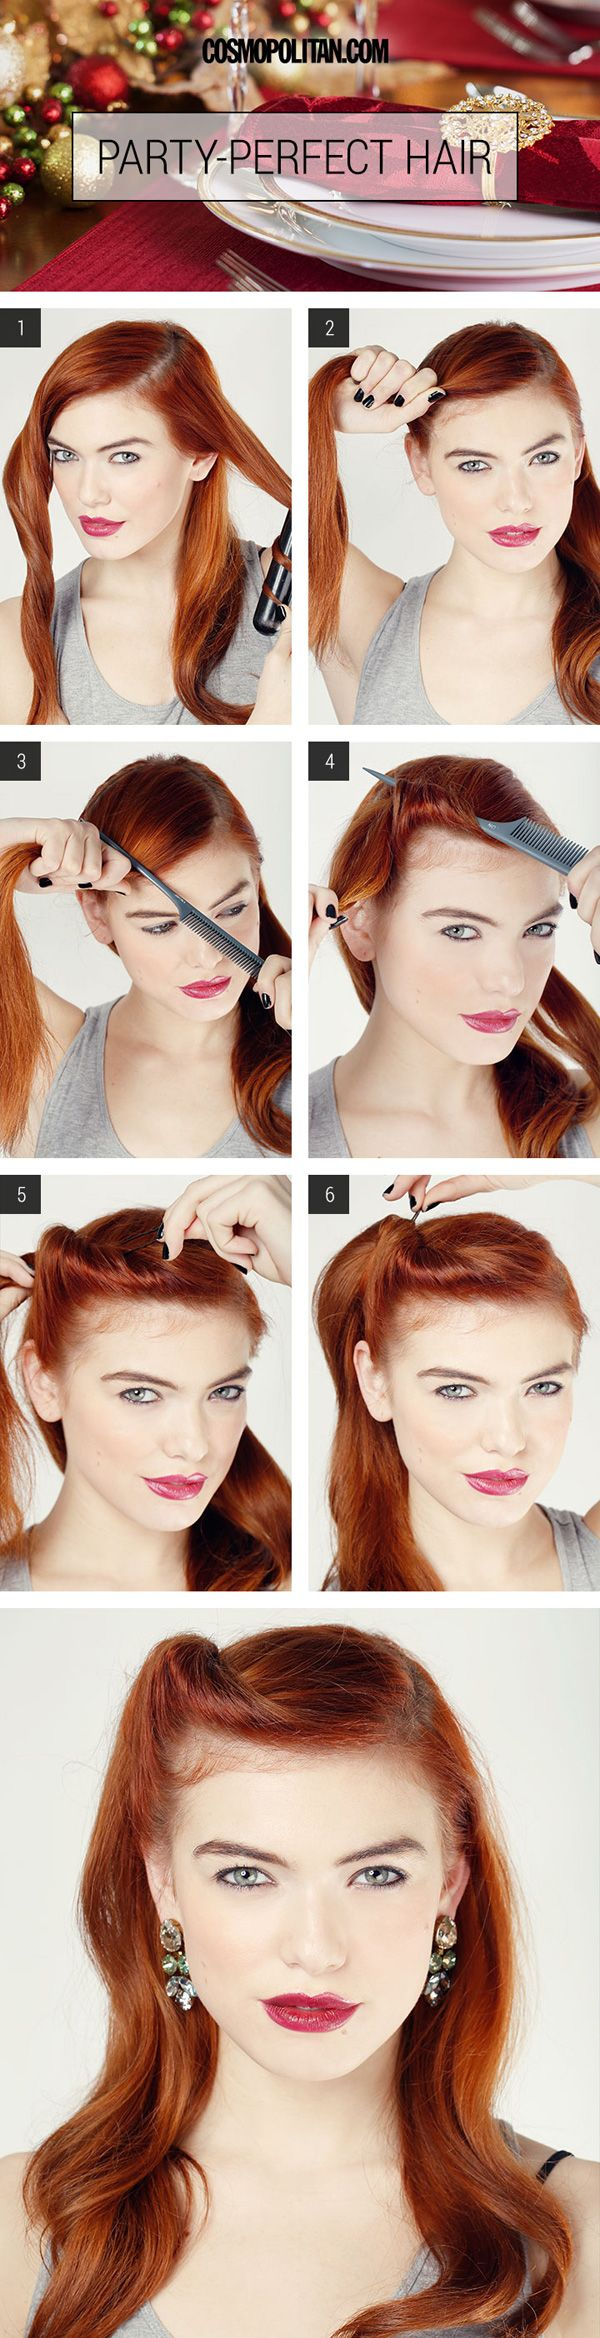 Forget that colorful gemstone necklace! Try this statement-making hairstyle instead.